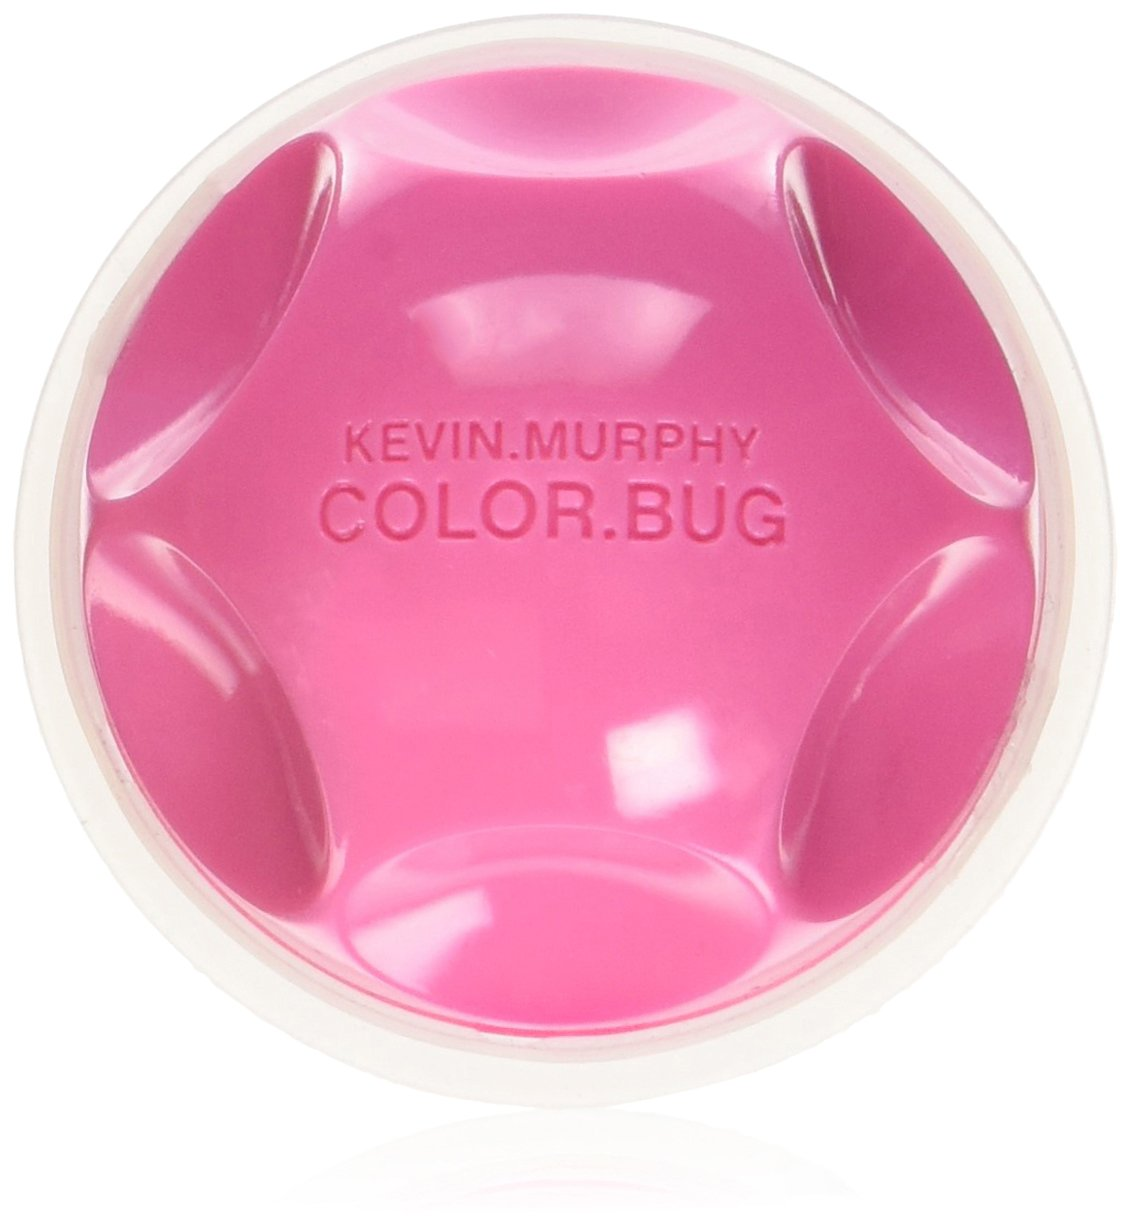 Kevin Murphy Color .Bug Coloured Hair Shadow 0.17 Oz Pink by Kevin Murphy